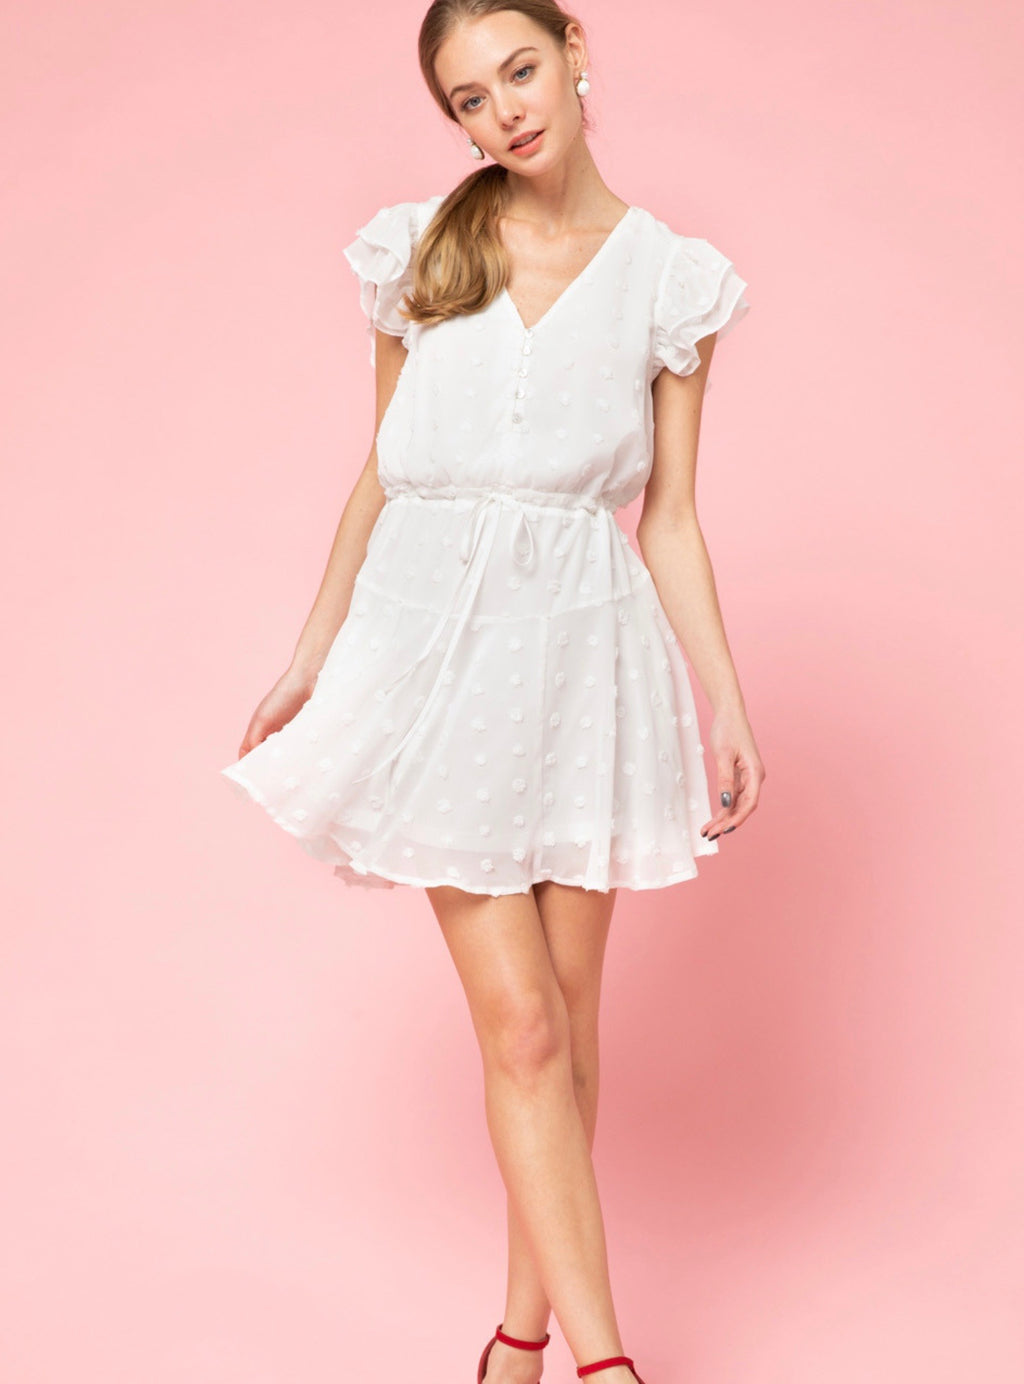 White Hot Summer Dotted Swiss V-Neck Dress - White - Pineapple Lain Boutique